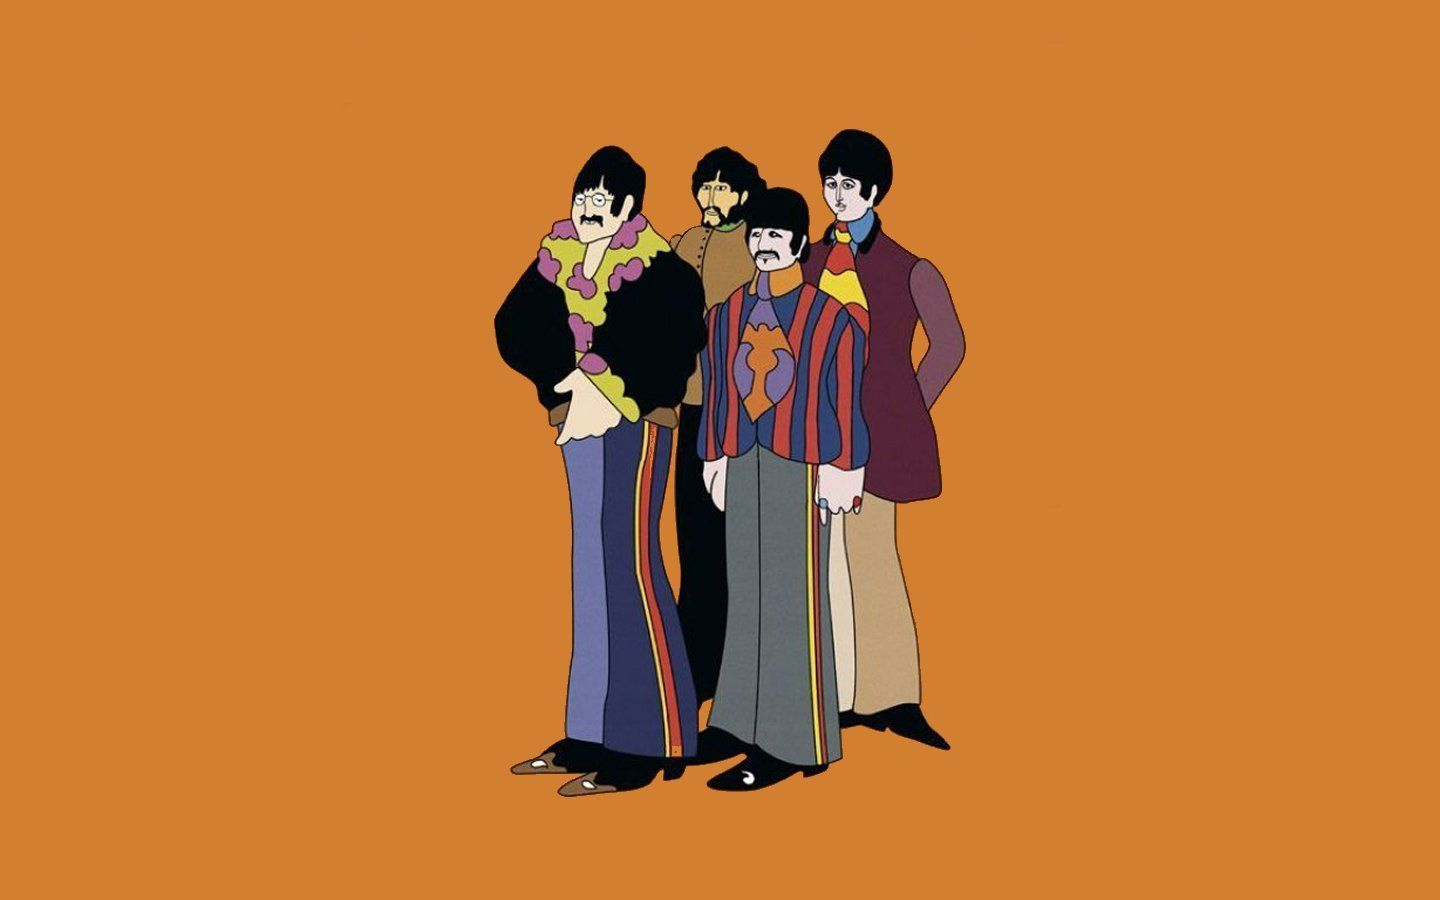 Beatles wallpaper hd creative beatles photos full hd wallpapers hd the best beatles wallpapers the beatles phone wallpapers wallpapers voltagebd Choice Image